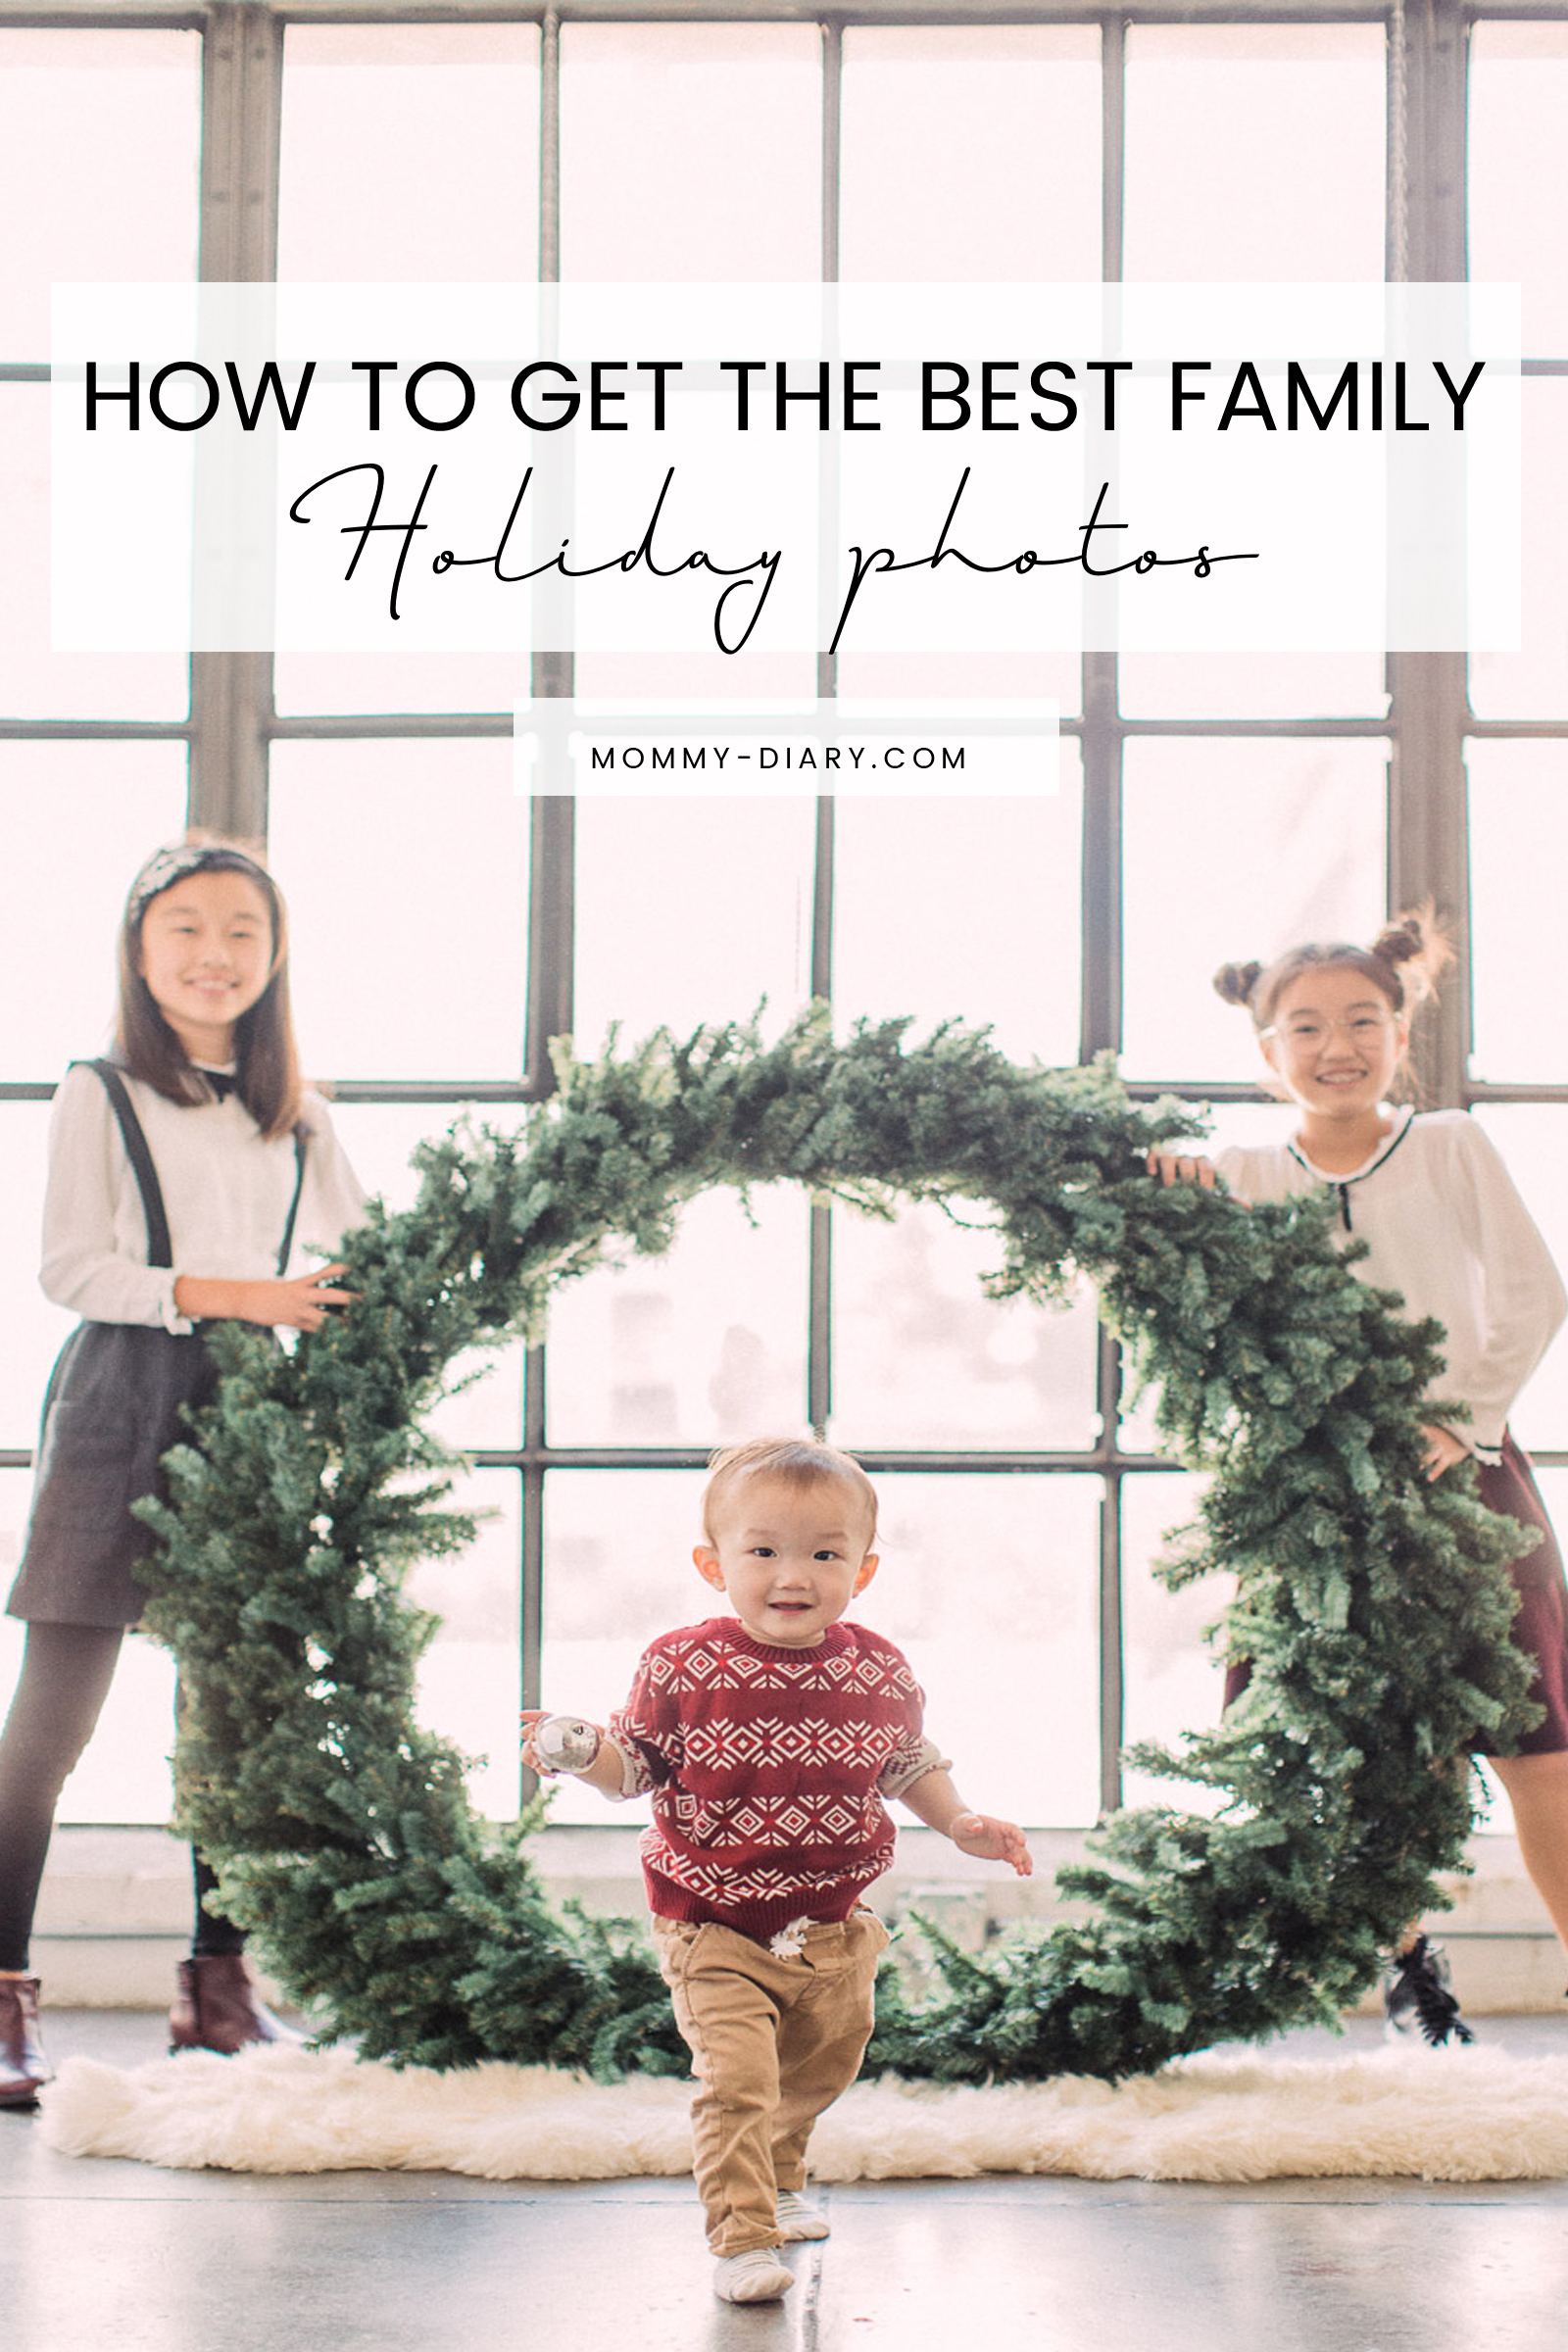 how-to-get-best-family-holiday-photos-cover